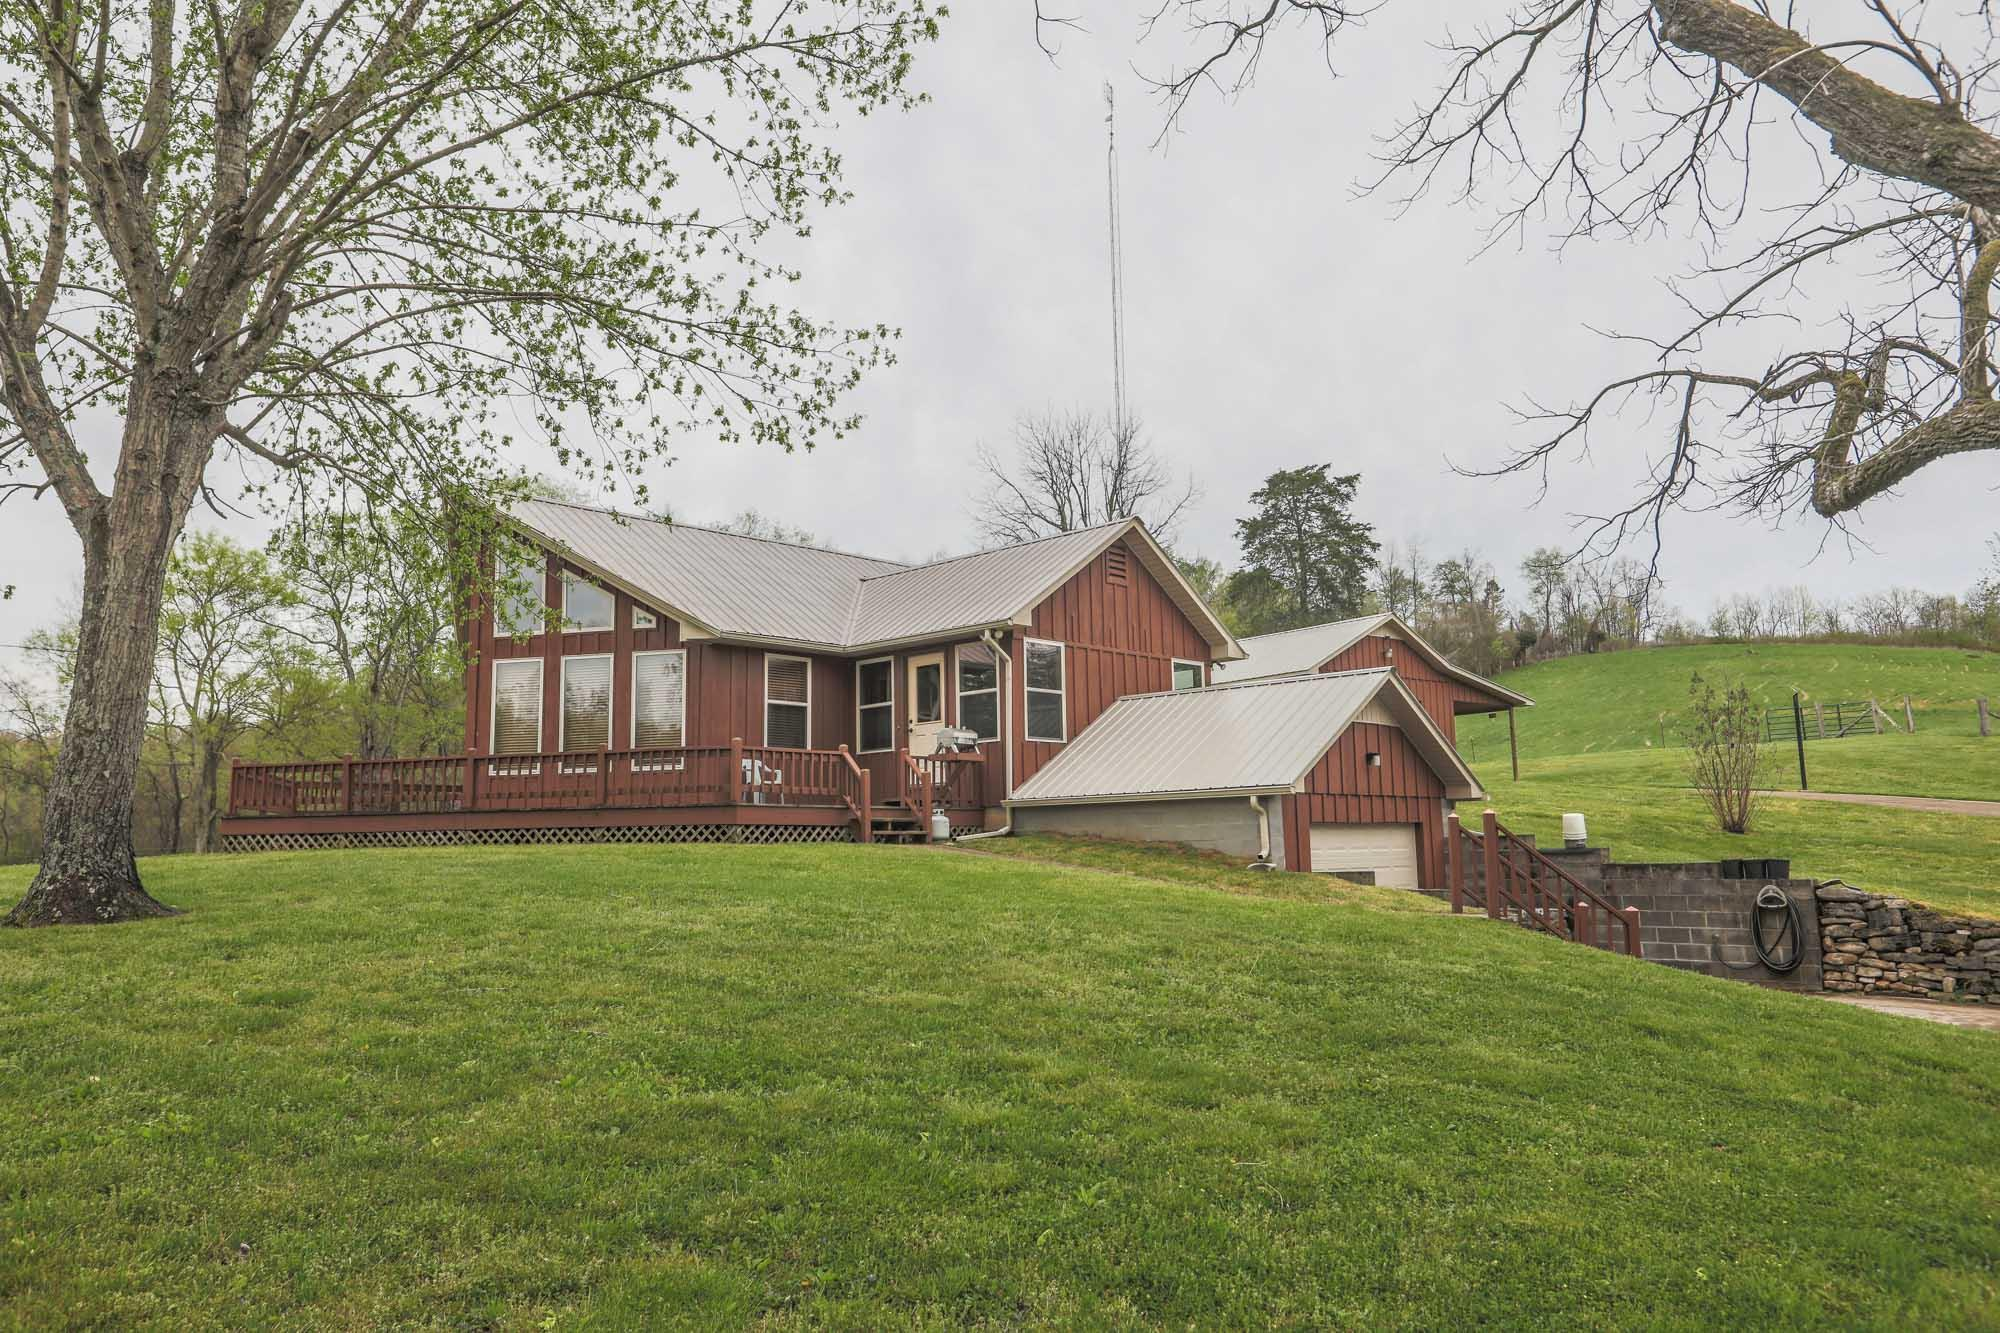 2015 Fred Todd Road, Westpoint, TN 38486 - Westpoint, TN real estate listing